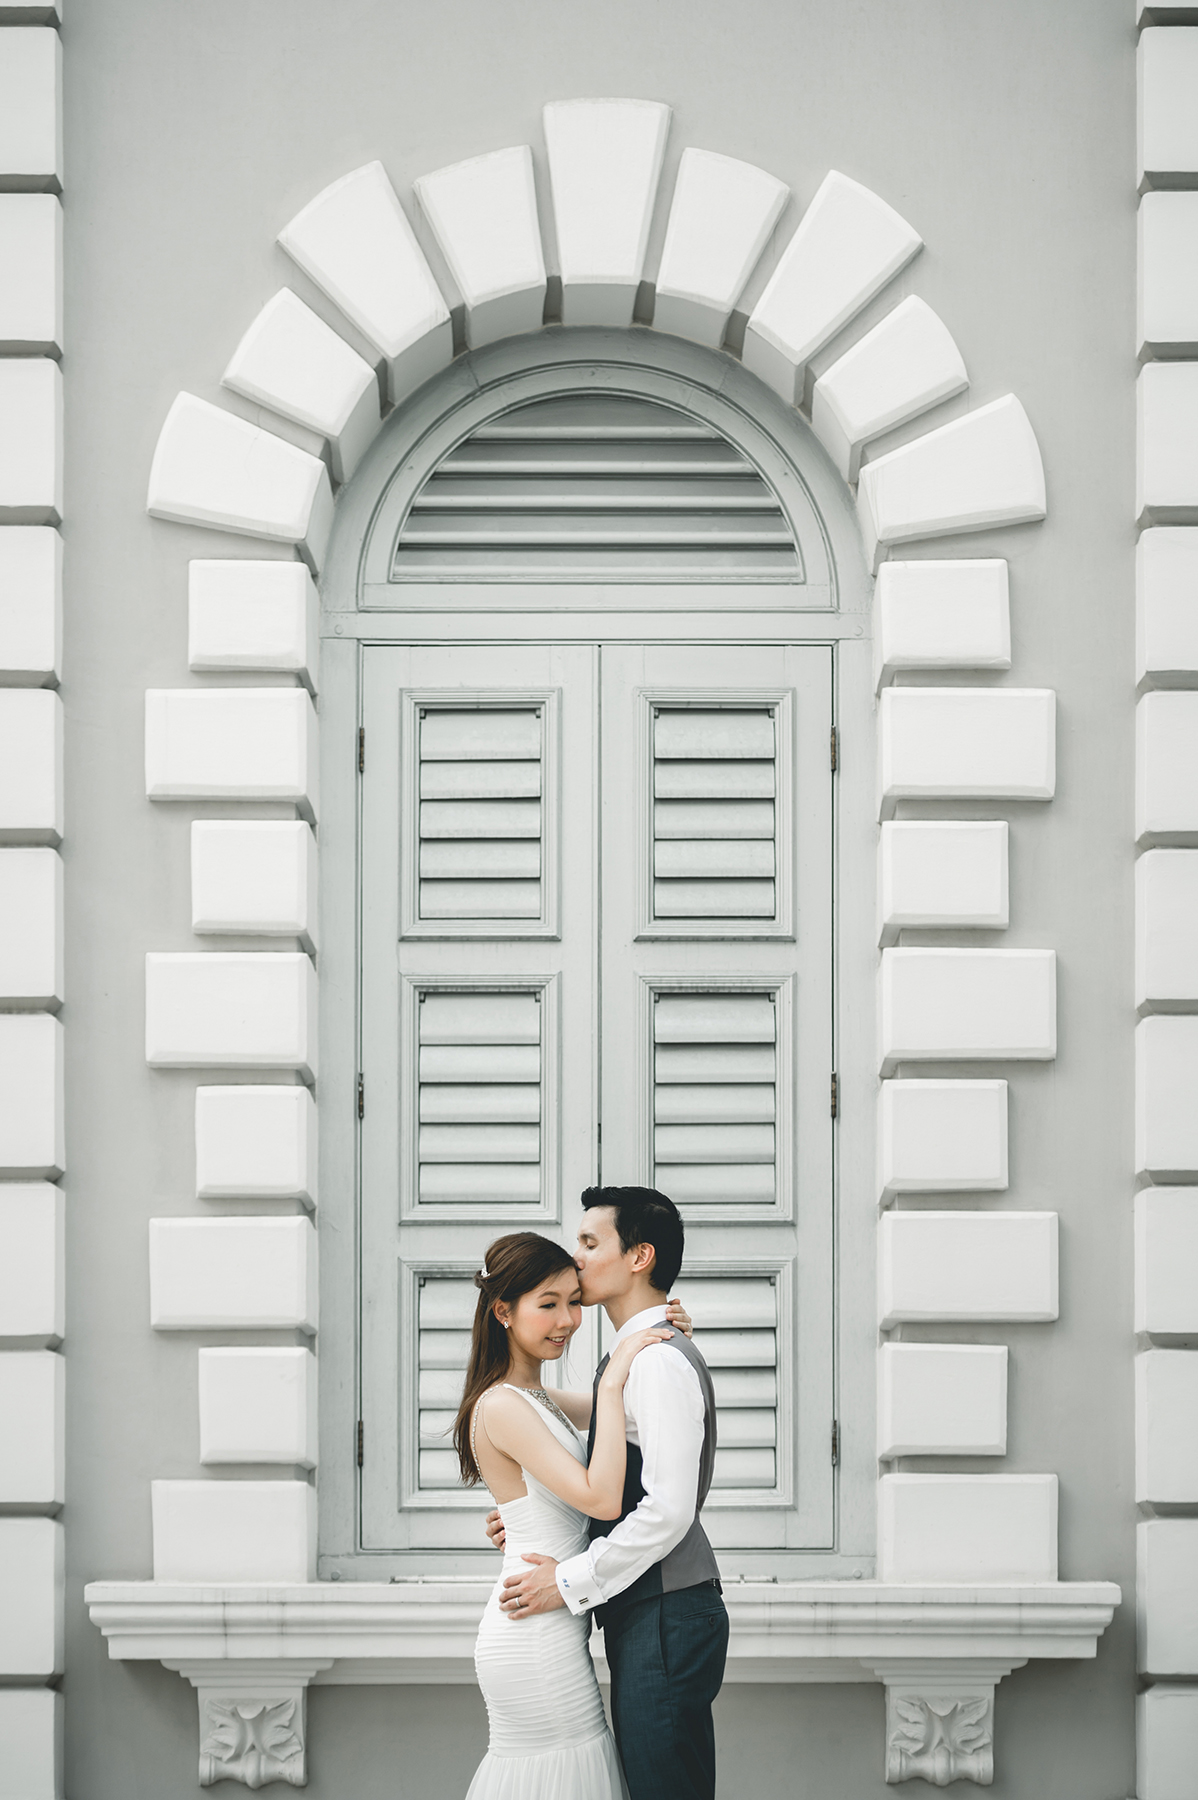 Prewedding National Museum 00006d.JPG